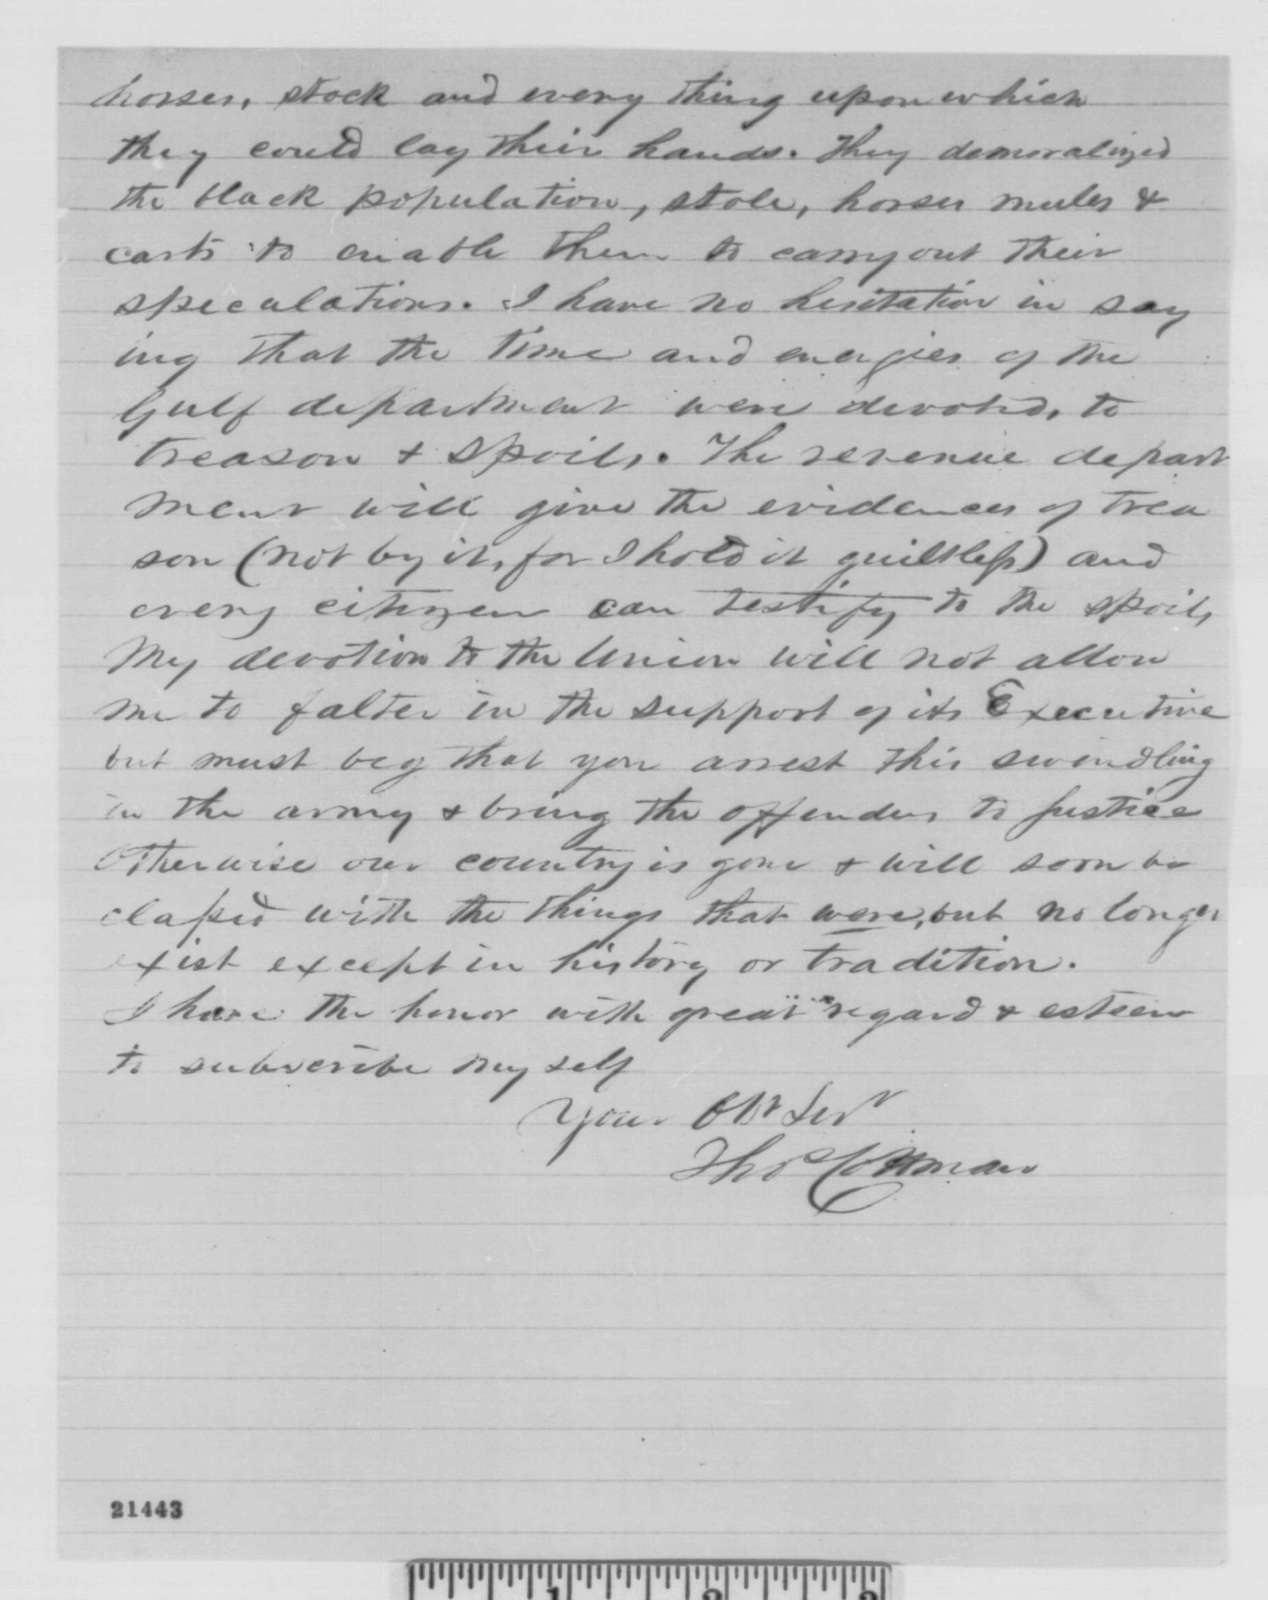 Thomas E. H. Cottman to Abraham Lincoln, Saturday, January 31, 1863  (Critical of Congressional election in 2nd district of Louisiana)